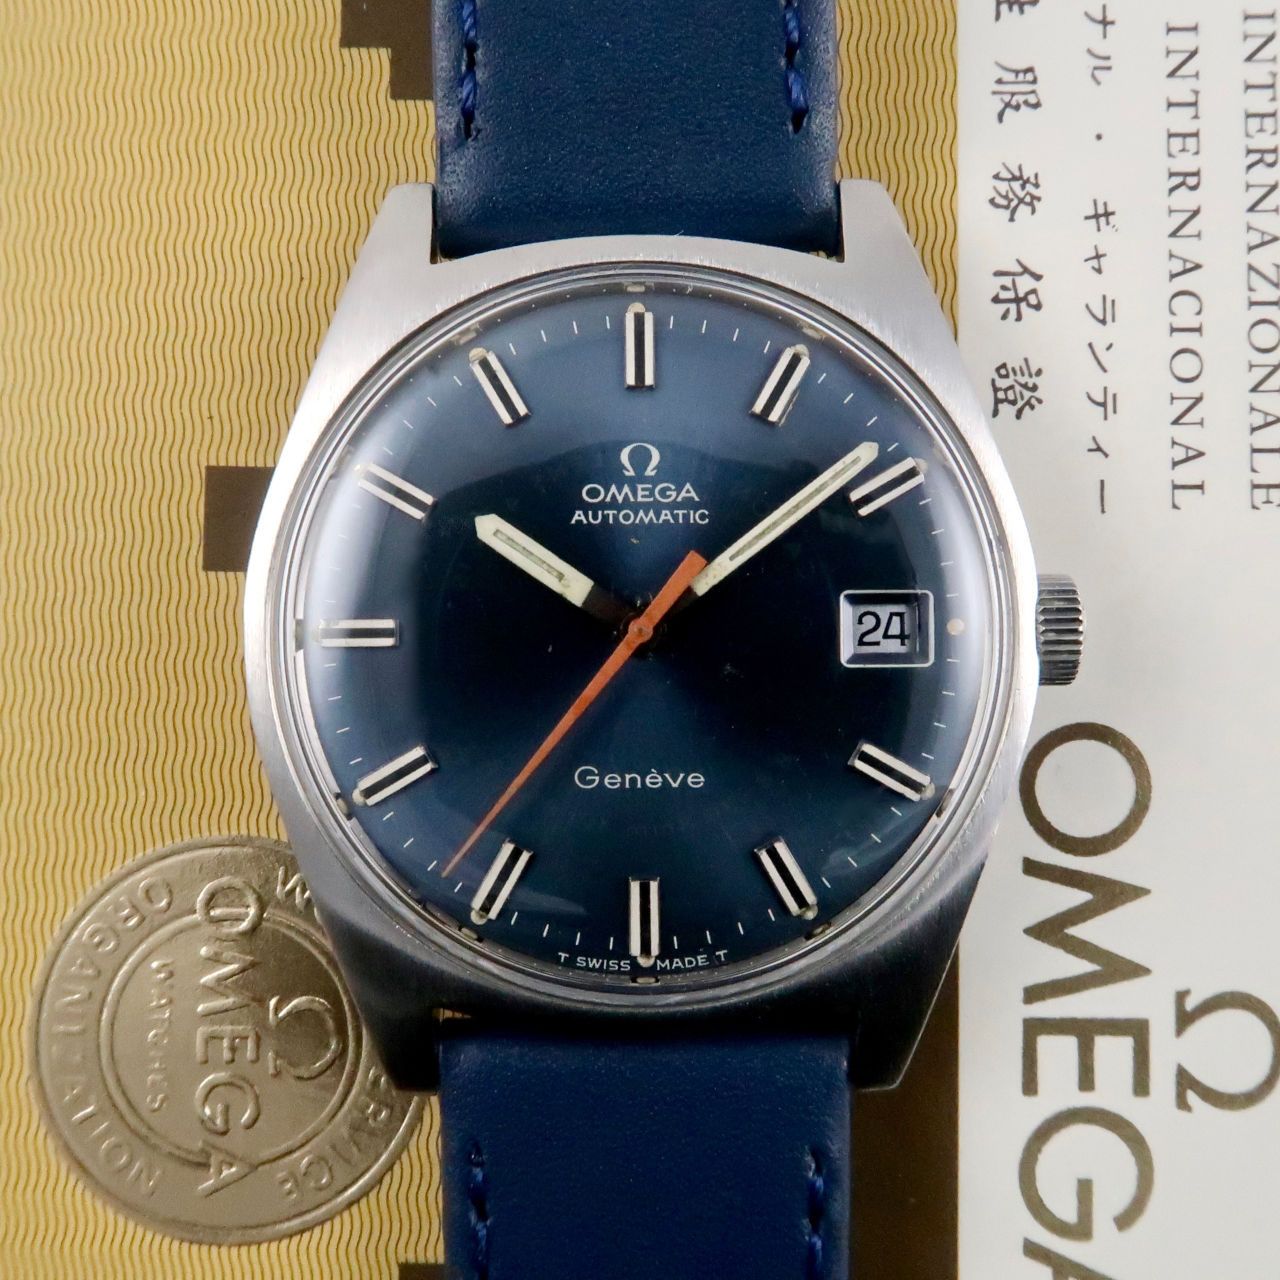 Omega Genève Ref. 166.041 steel vintage wristwatch, sold in 1970